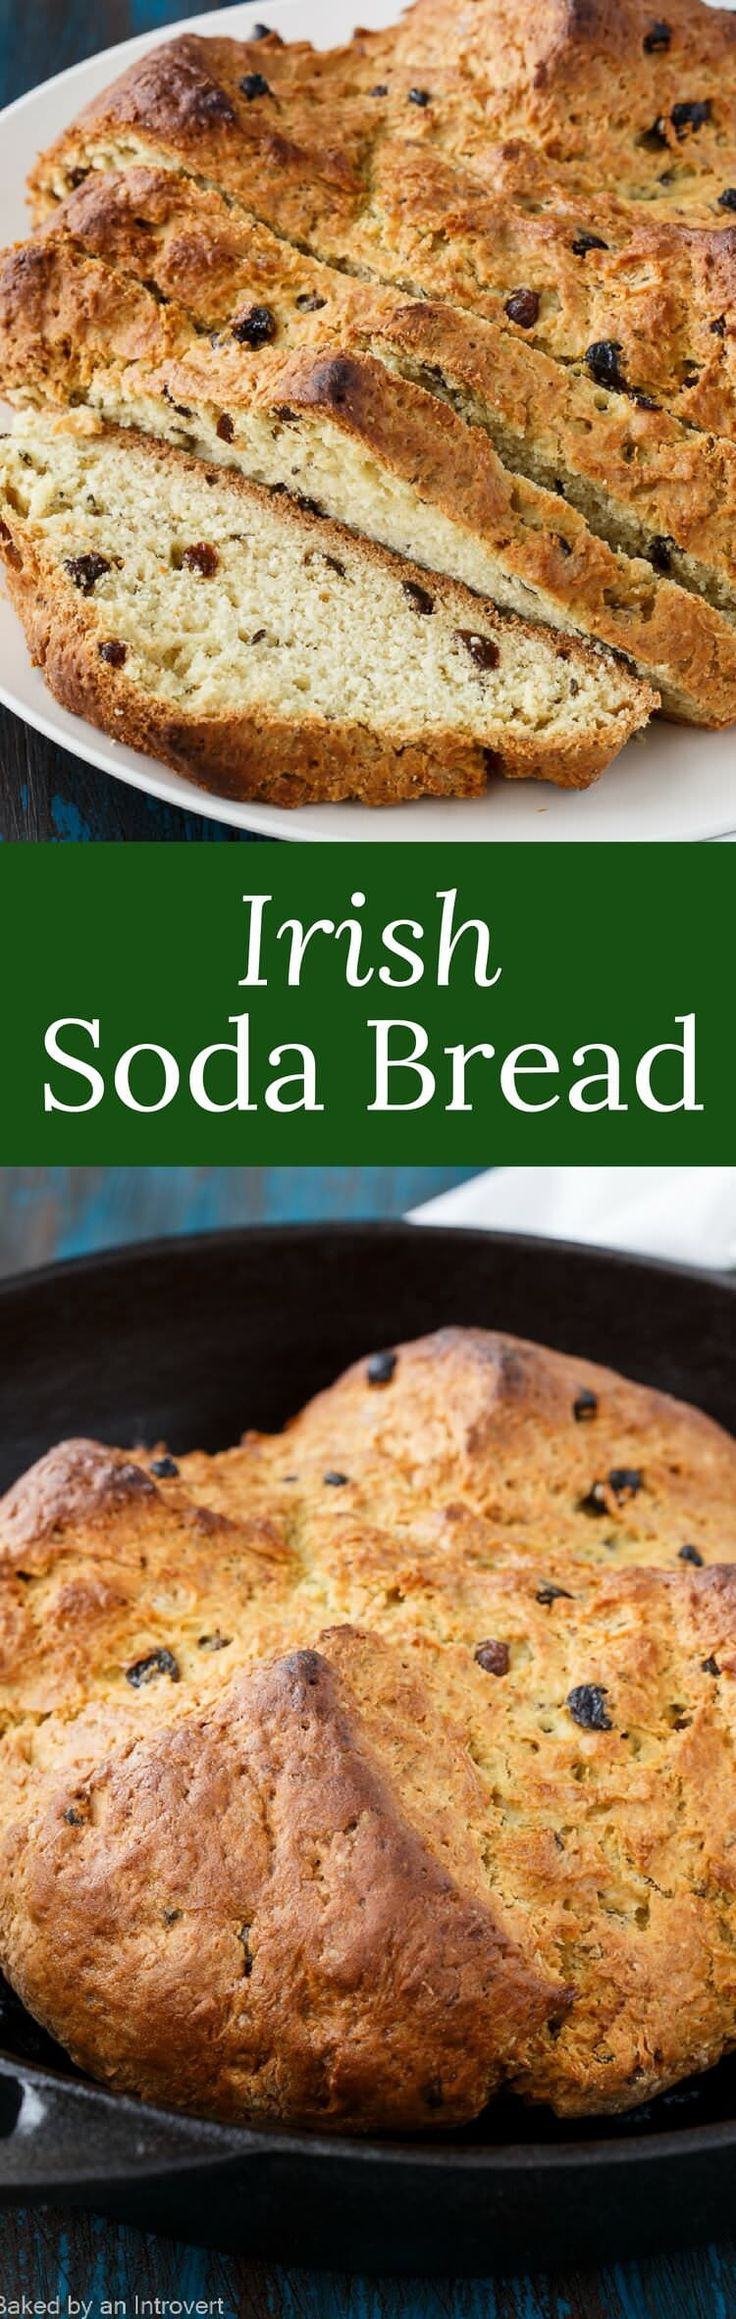 This Irish Soda Bread is a family favorite for St. Patrick's Day. It's flavored with fragrant caraway seeds and plump dark raisins.  via @introvertbaker